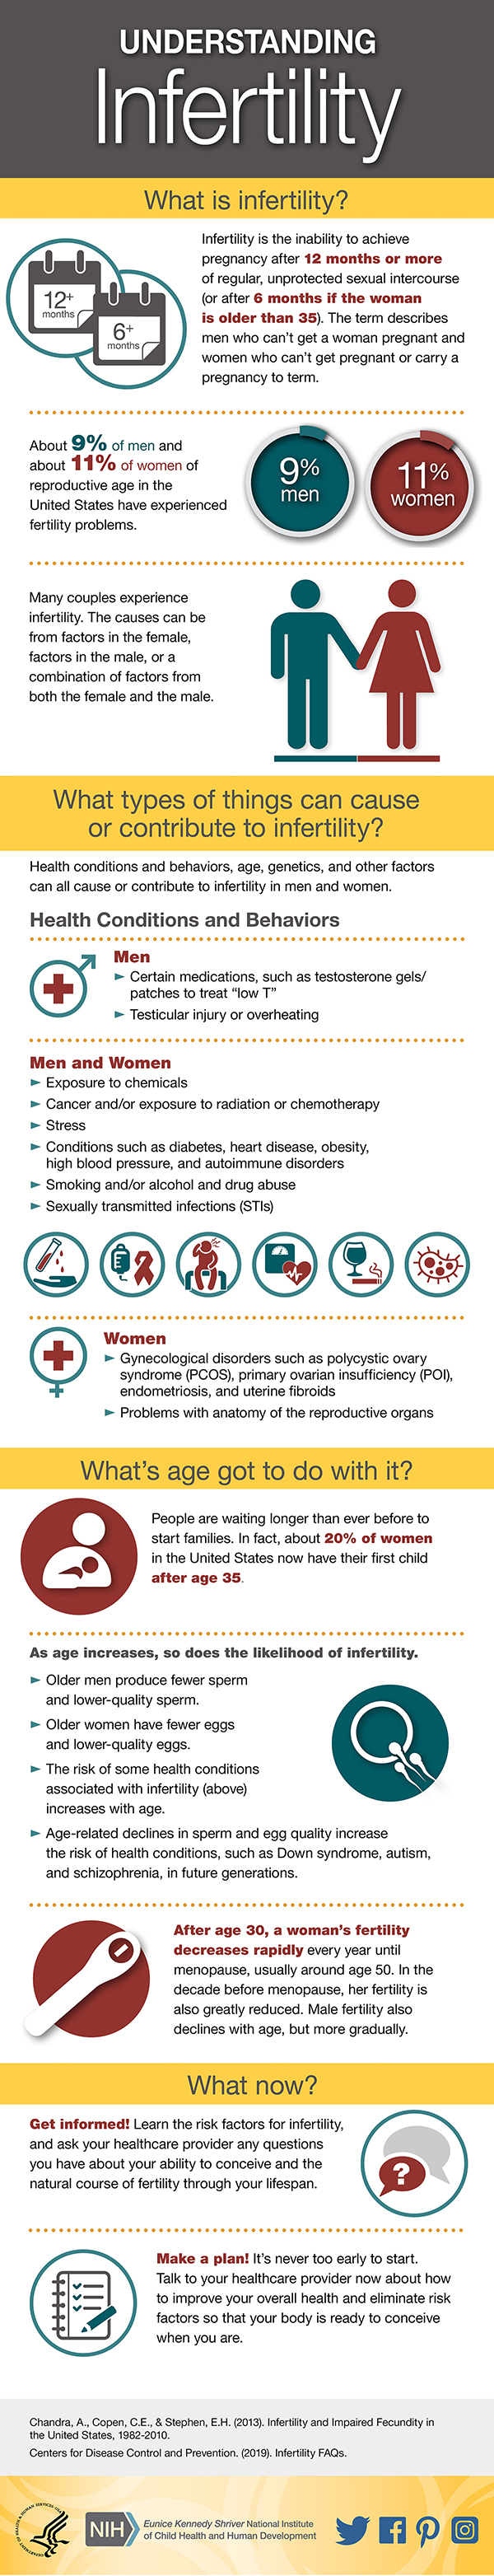 Infertility Problems Info graphic, trend Health